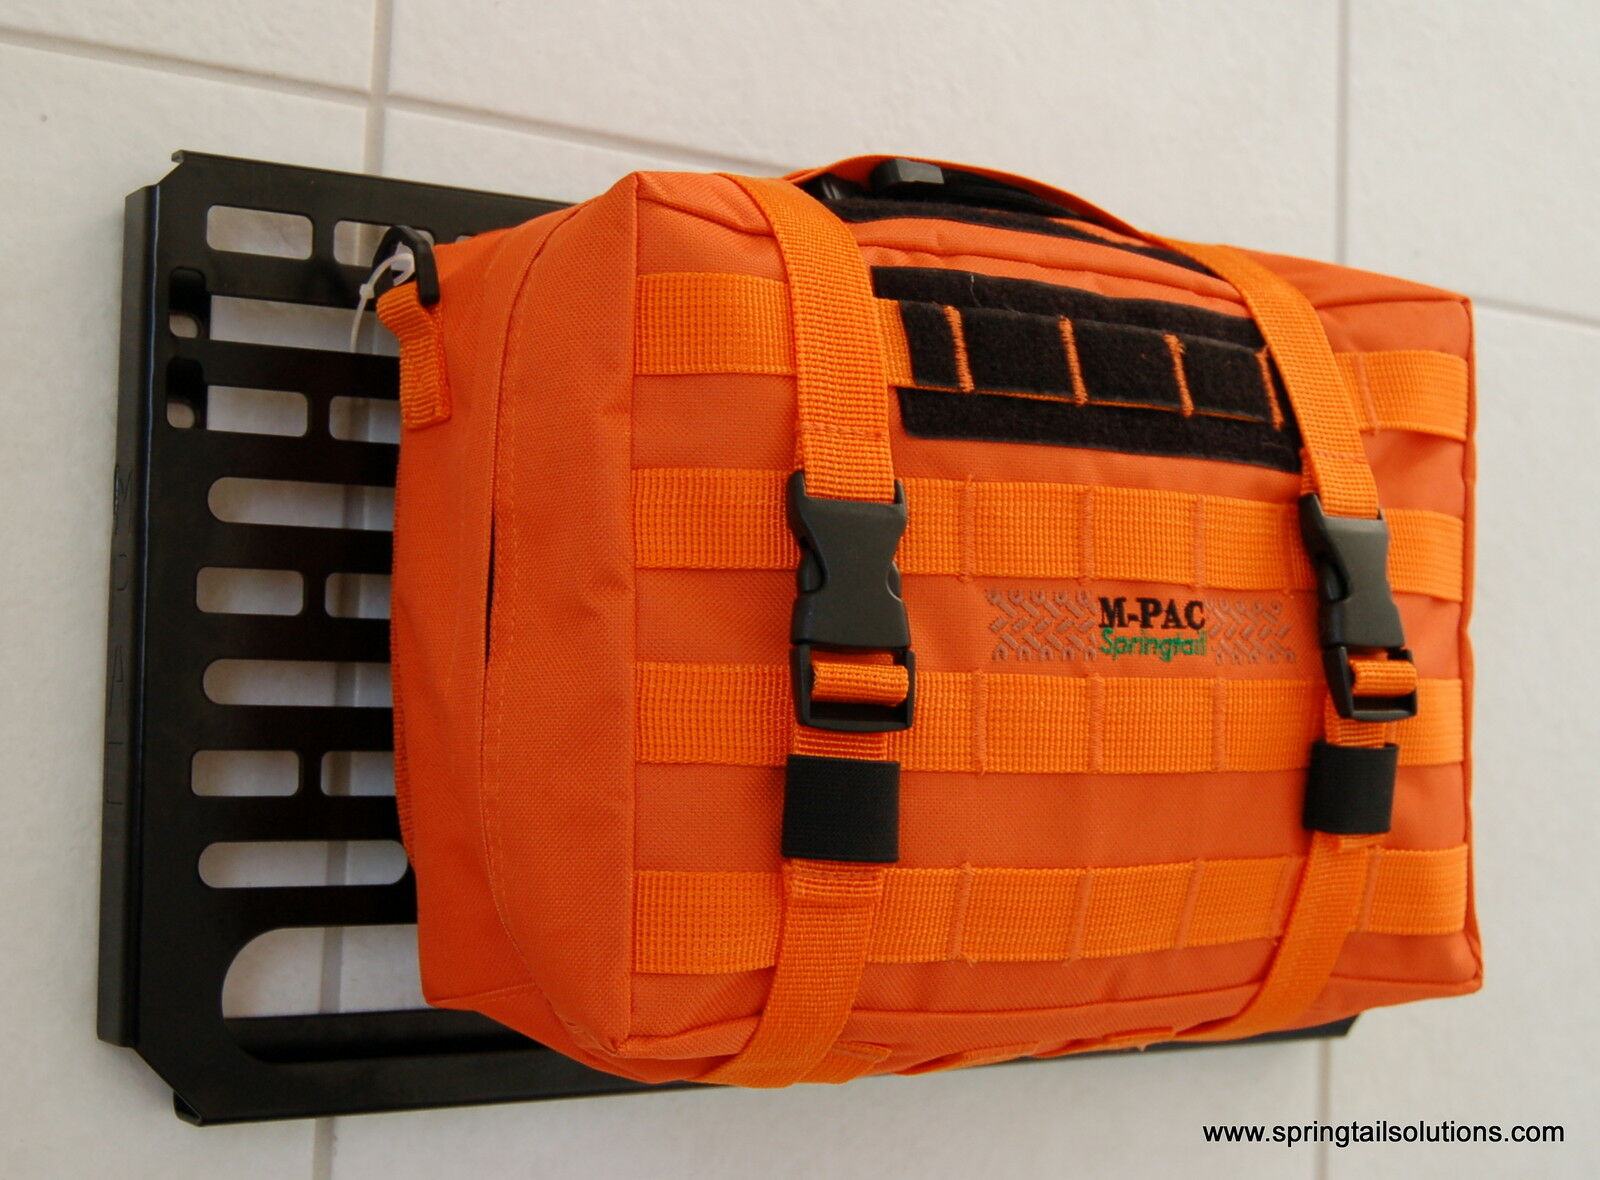 Springtail Mpac Orange First Aid Molle Pouch (rip-away) Large 1st Aid Bag